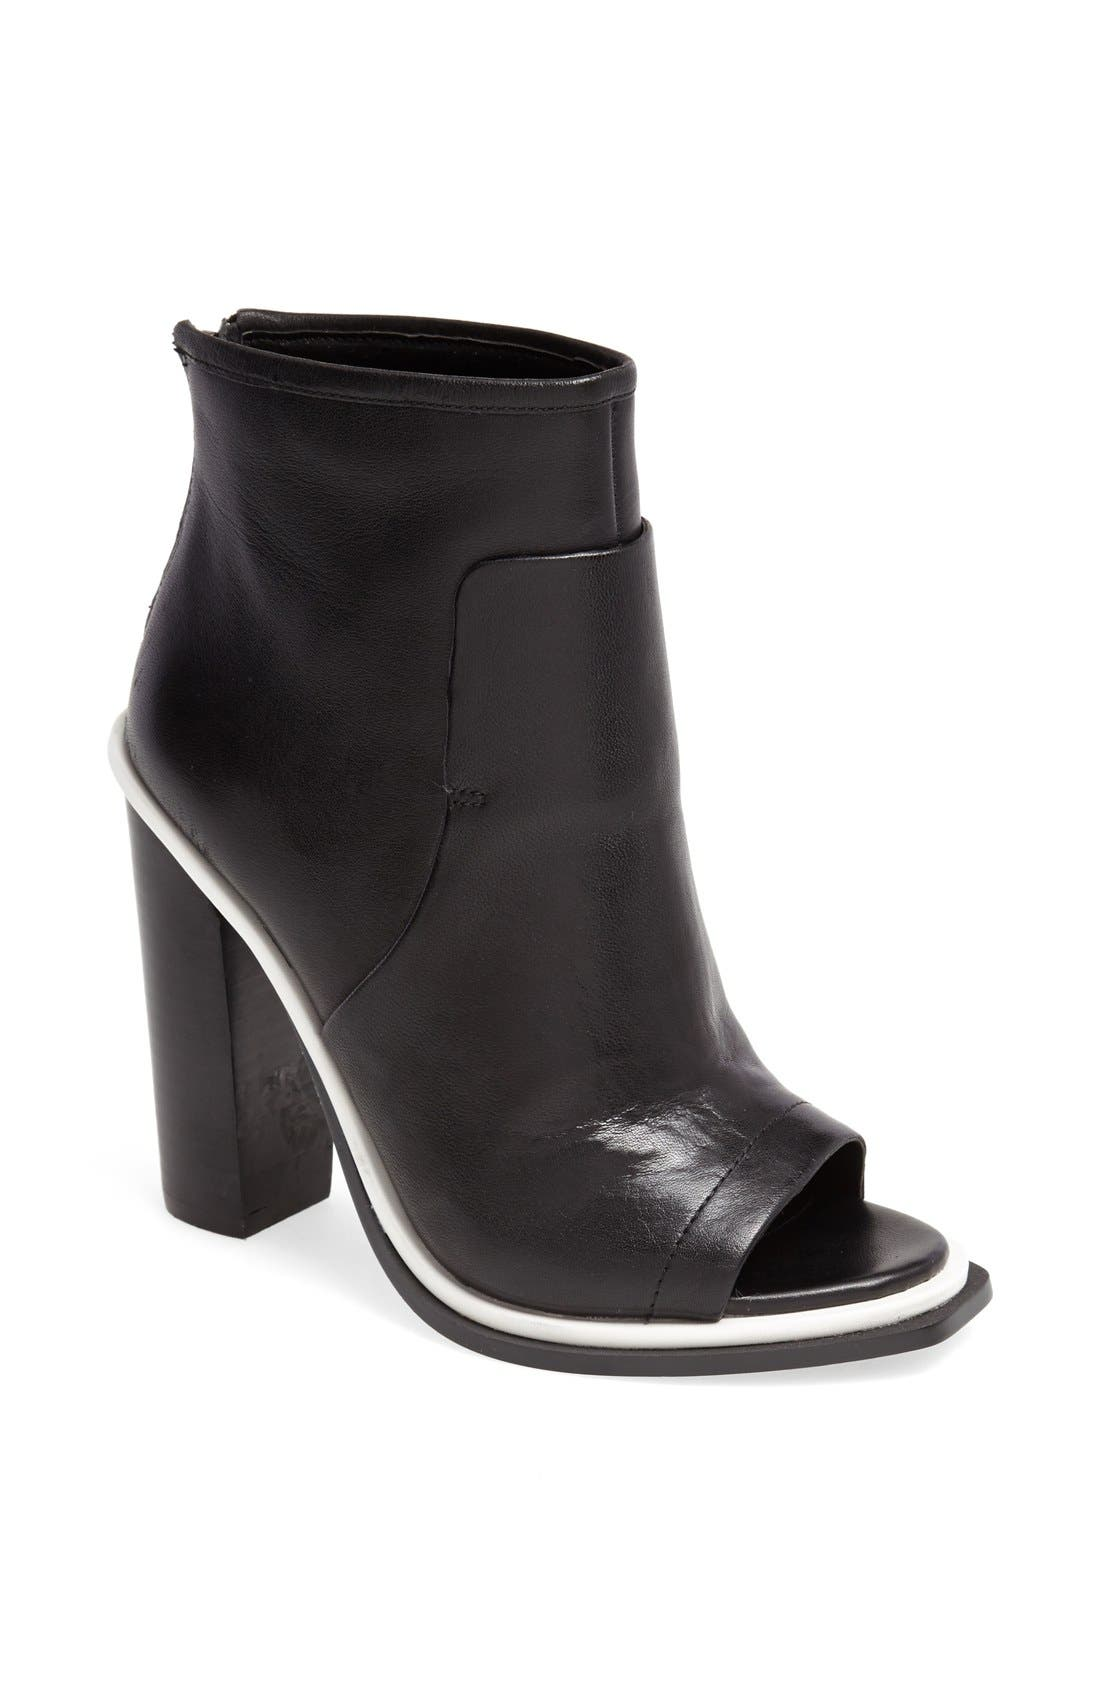 Alternate Image 1 Selected - Topshop 'Pounce' Peep Toe Boot